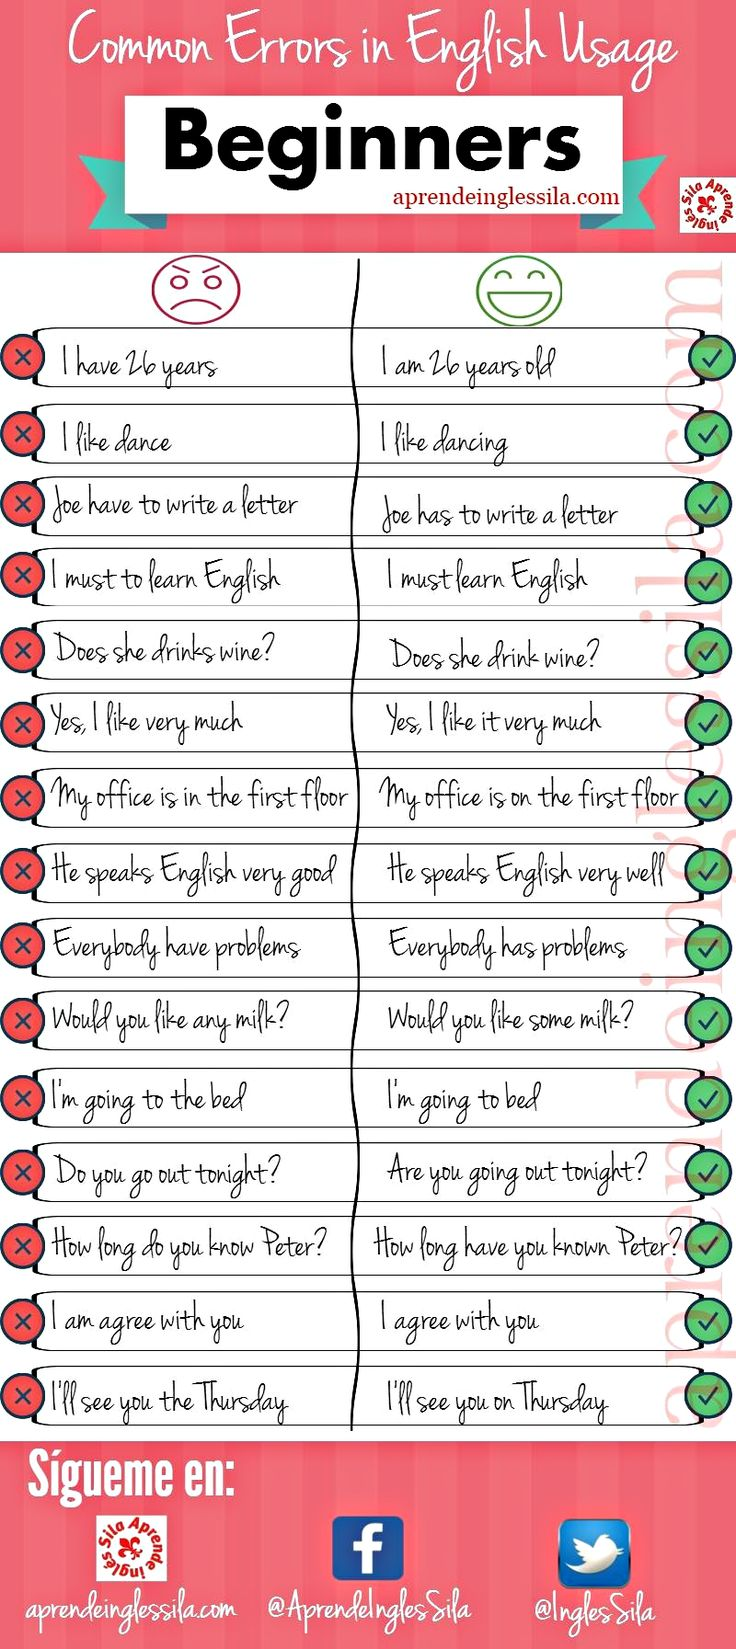 Common Errors in English Usage - Beginners